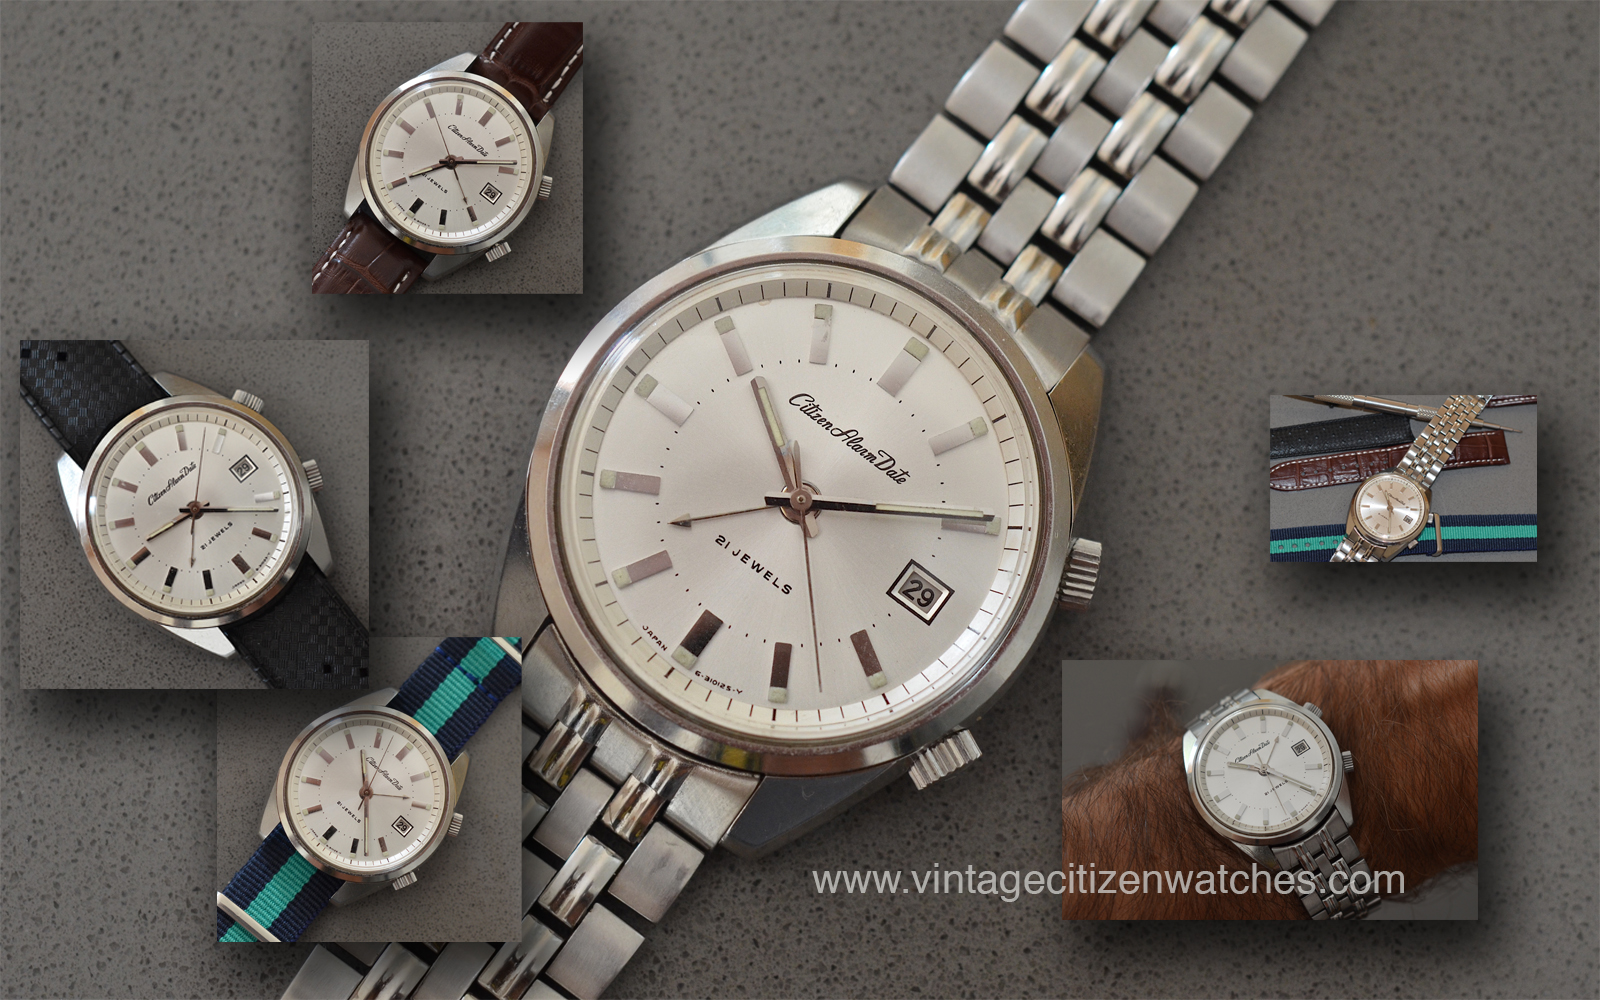 Vintage Citizen Watches The Wonderful World Of Diagram Together With Watch Parts You Can Read About Its Technical Features Here Now We Will Talk Process Suggesting And Choosing A